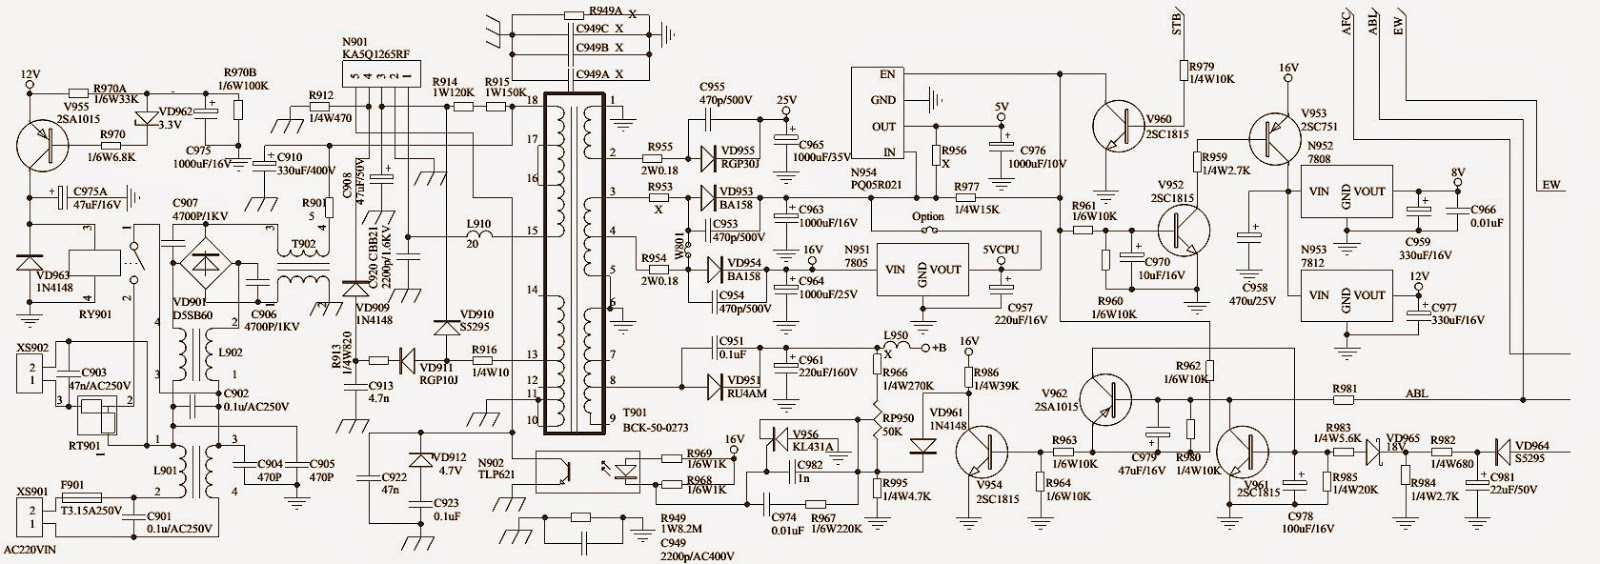 Smps Power Supply Schematic on single phase transformer schematic, cctv schematic, usb cable schematic, battery charger schematic, ups schematic,